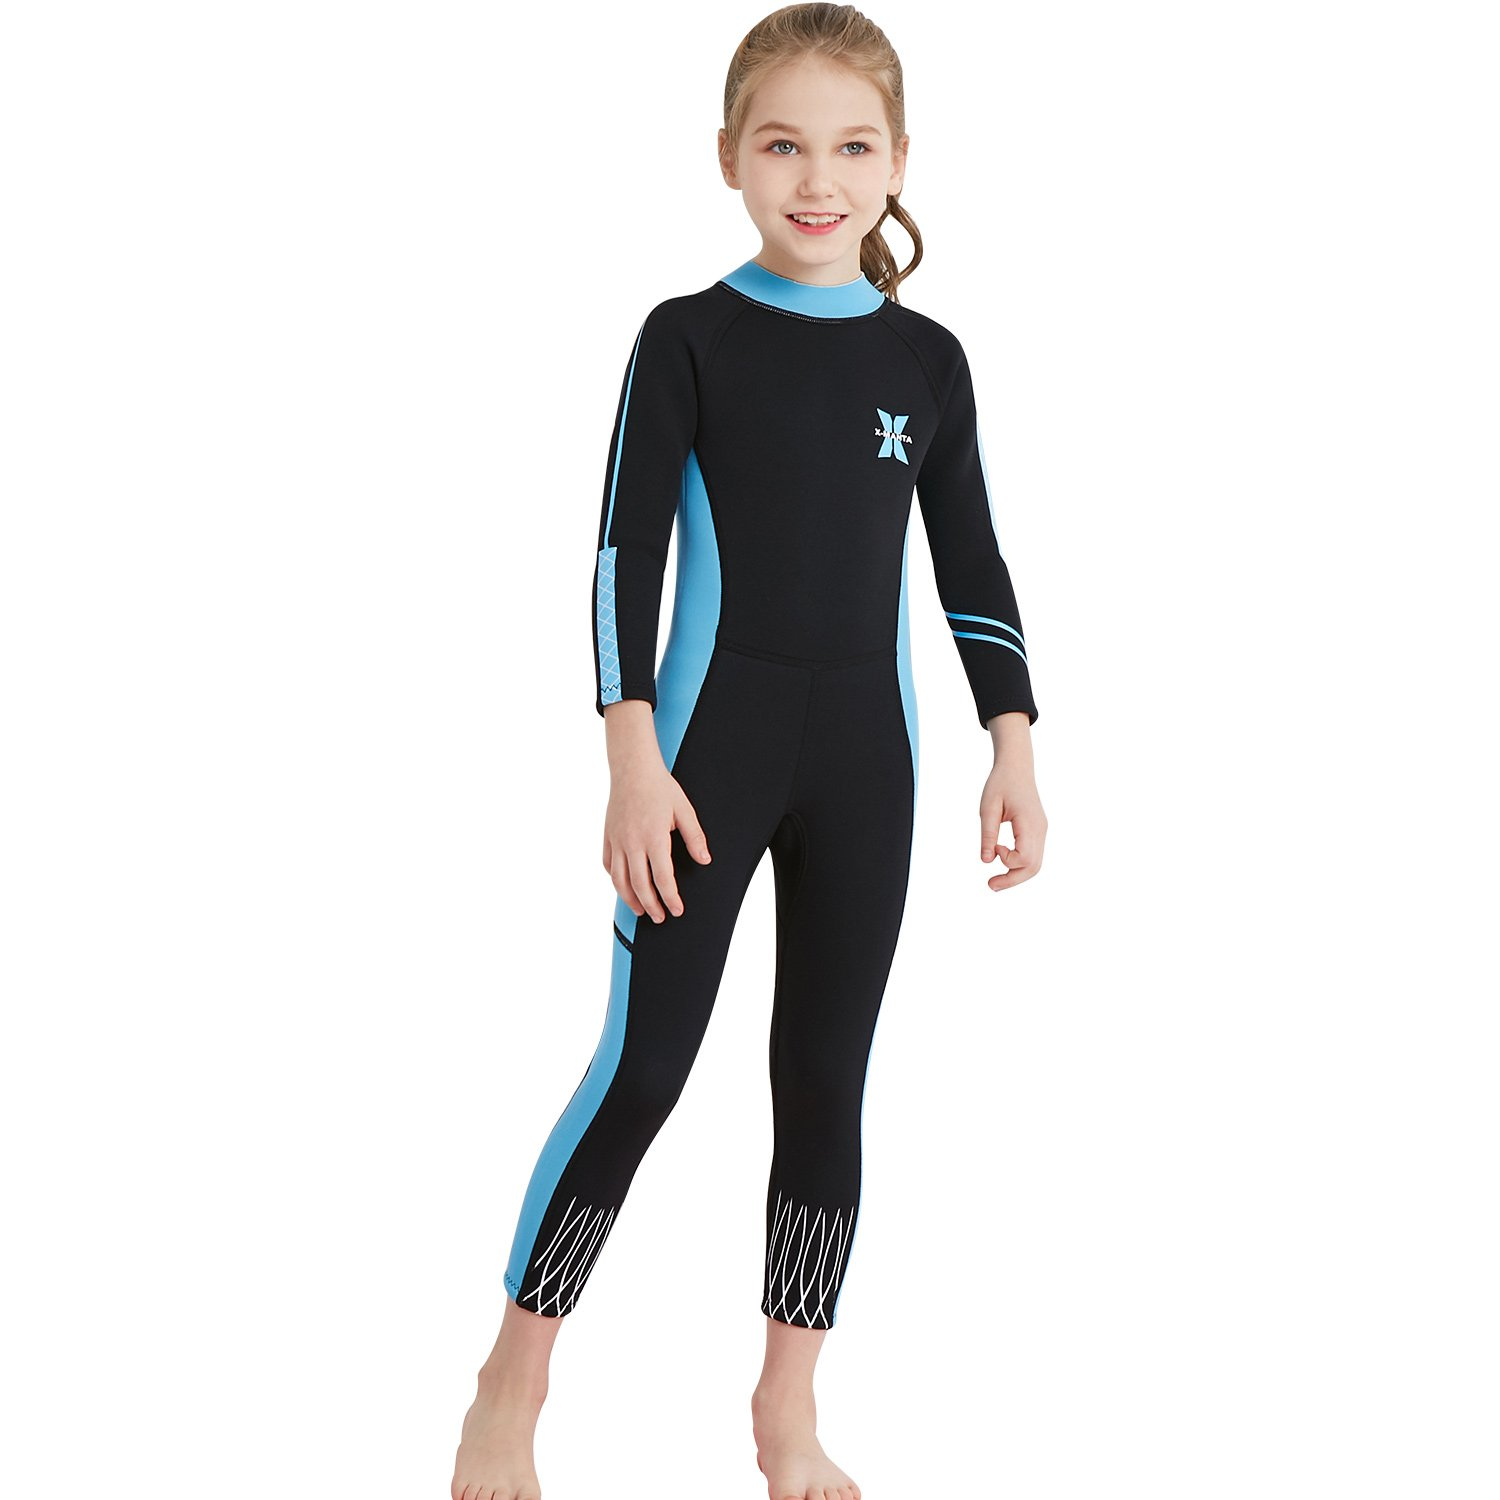 Fanceey Kids 2.5mm Neoprene Wetsuit Girls Swimming Costume Thermal Insulation Long Sleeve Suit Surfing Snorkling Diving Skins